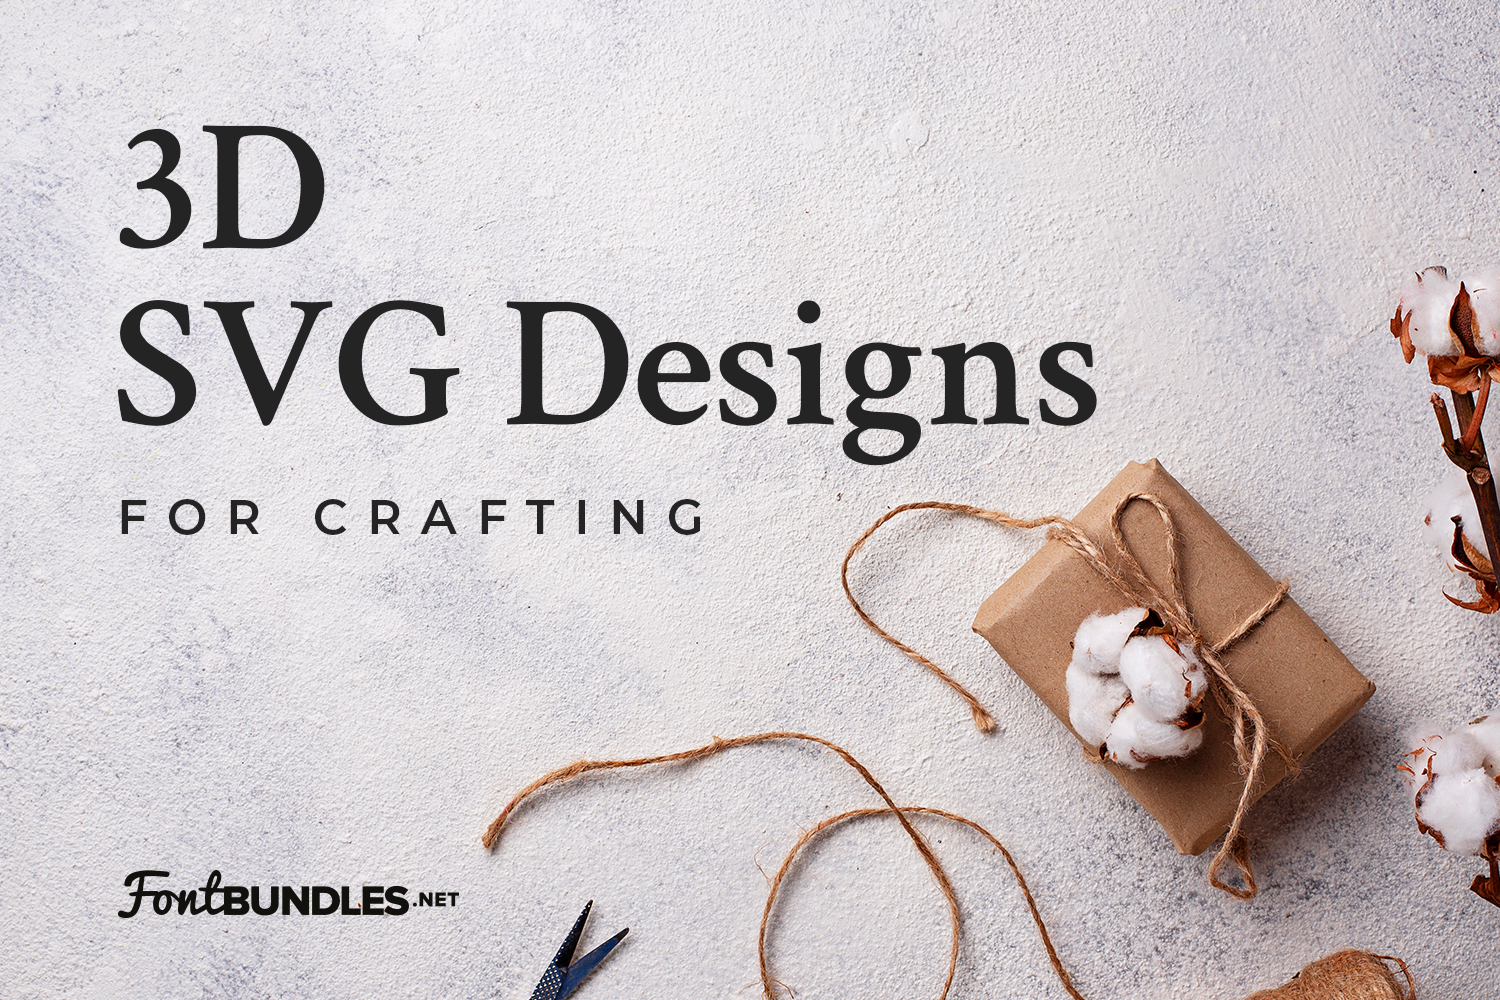 3D SVG Designs for Crafting